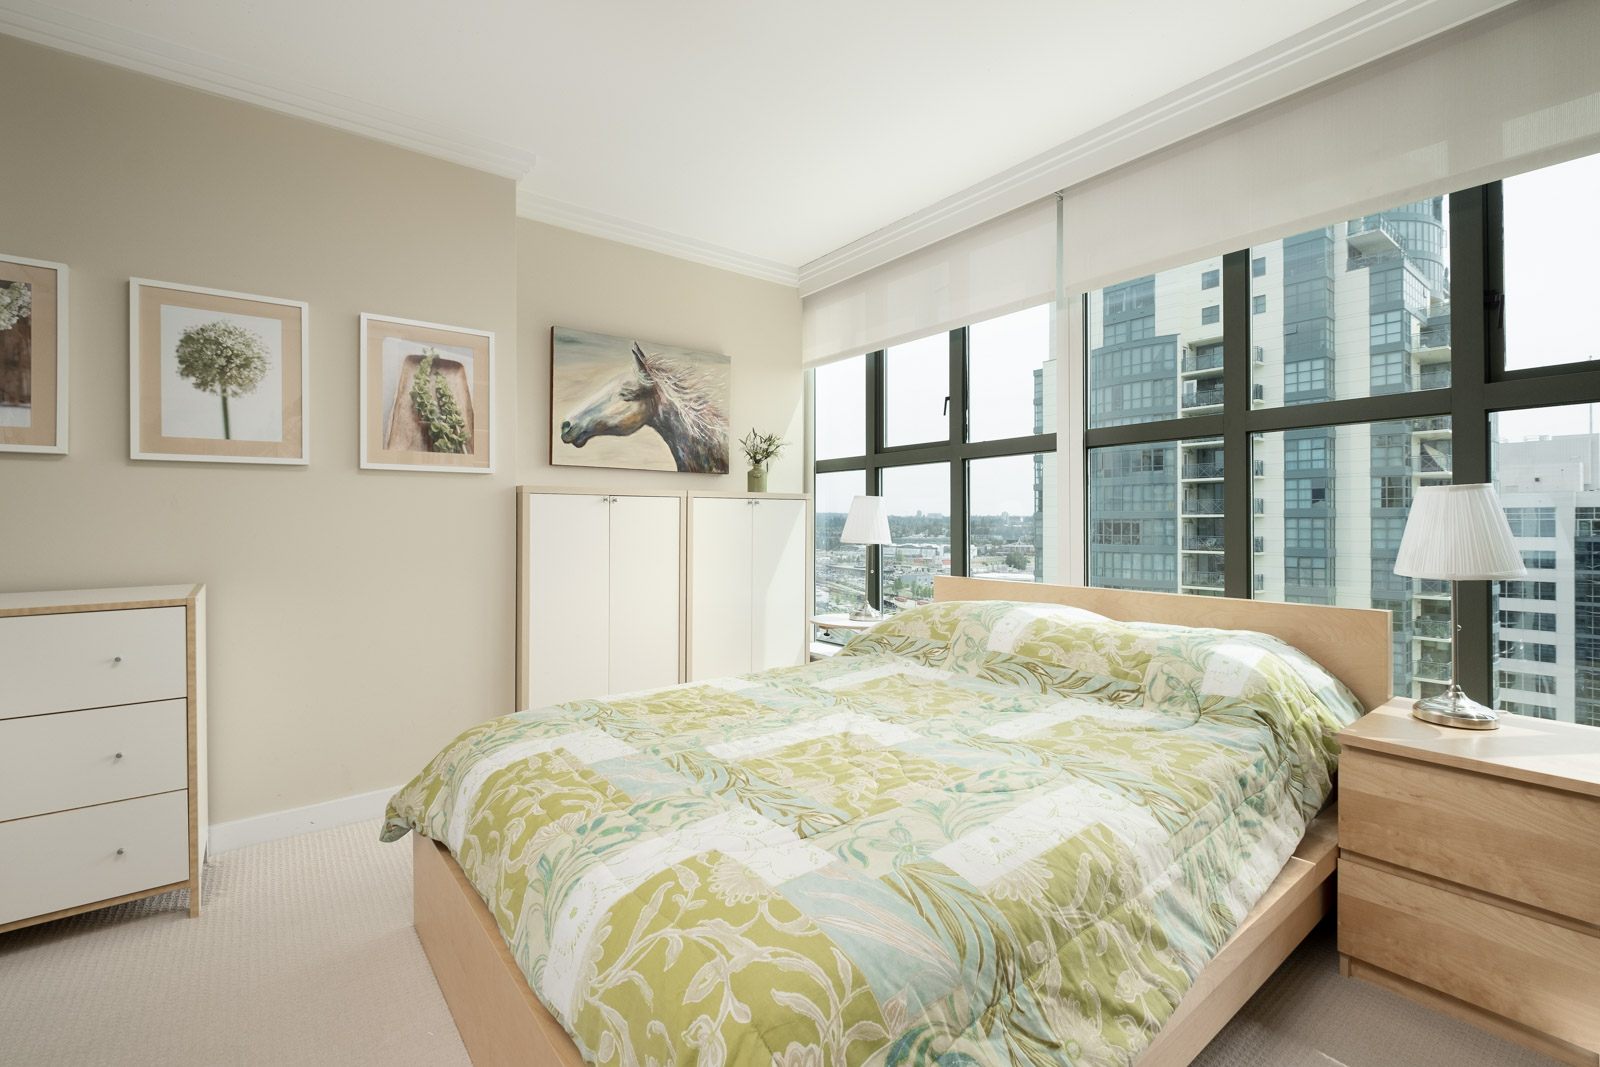 Bedroom inside furnished Downtown Vancouver rental condo with windows offering city views.